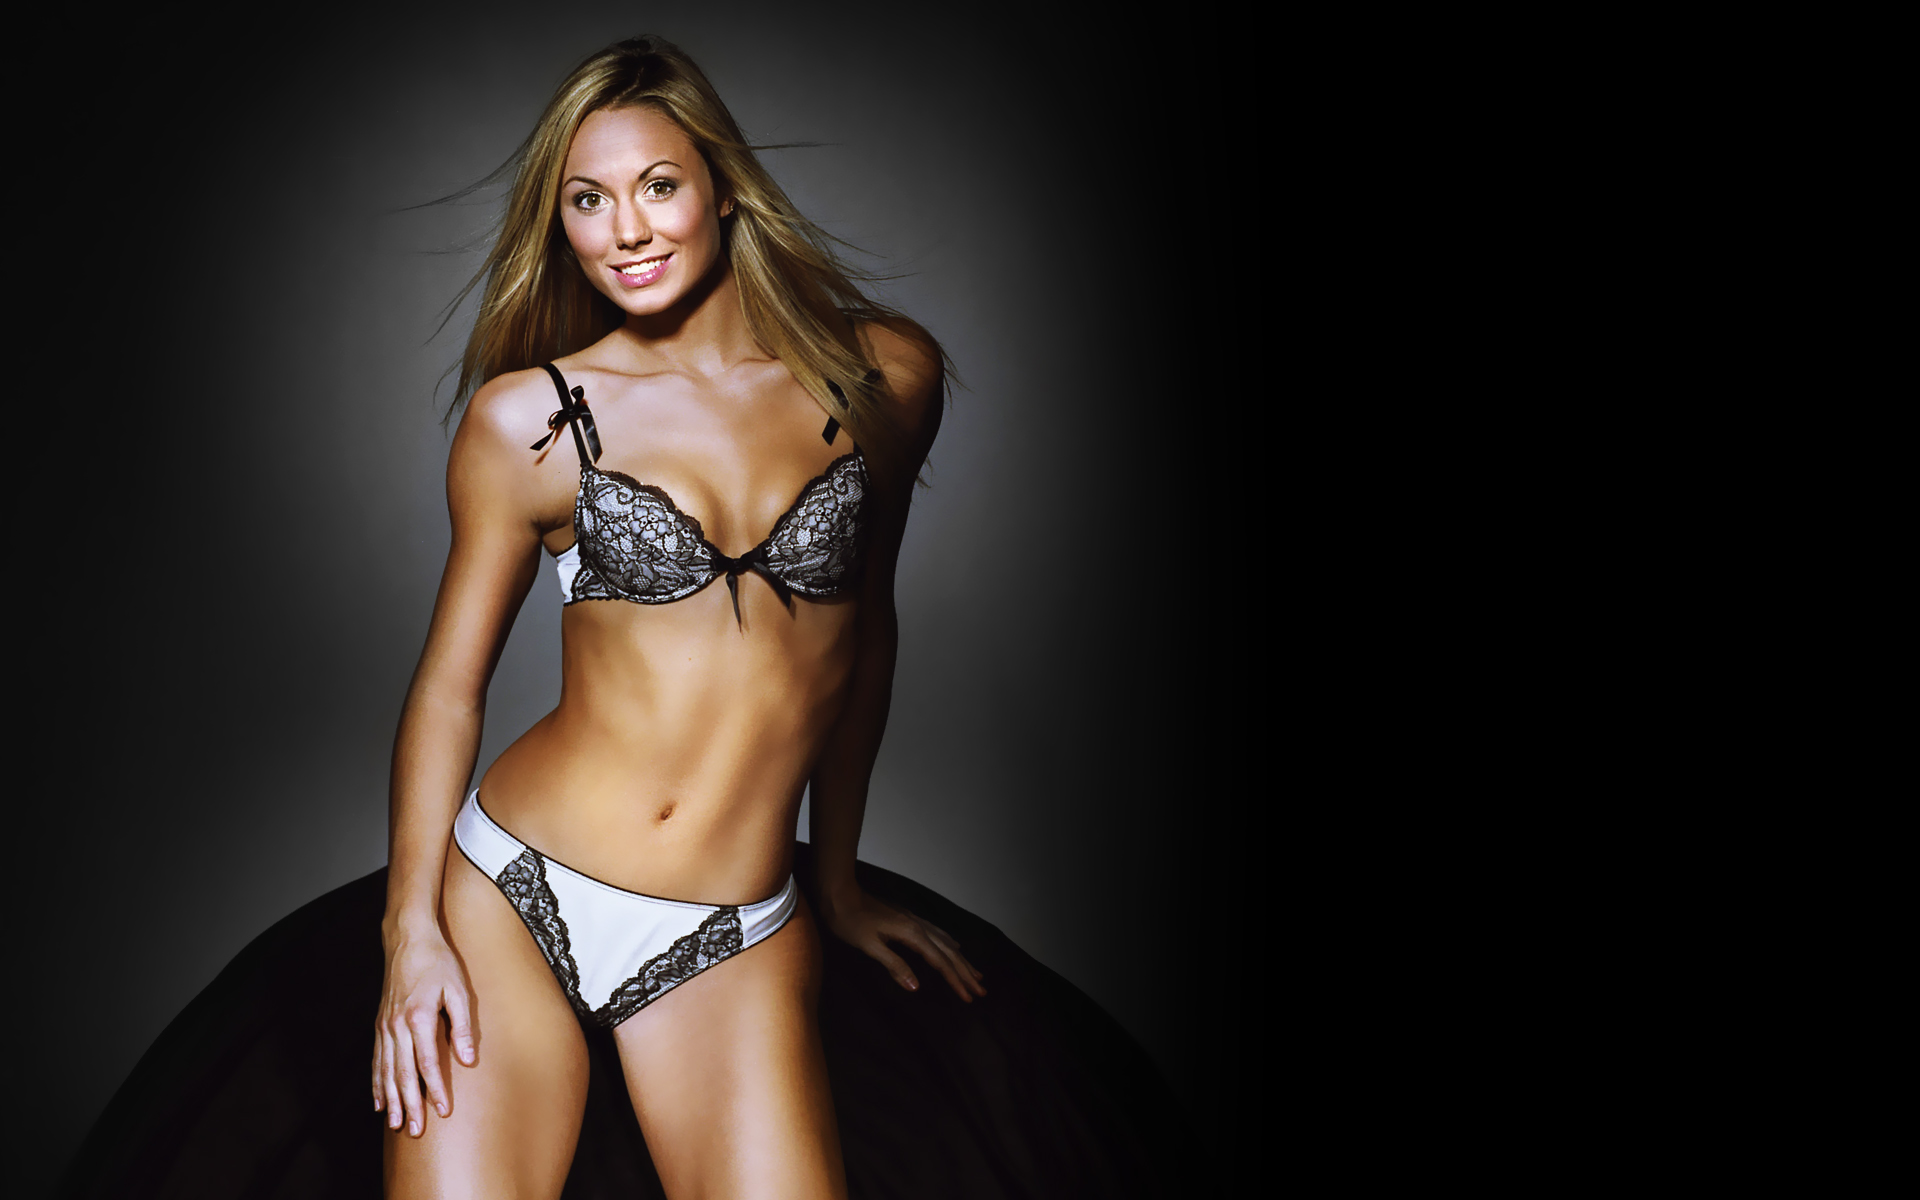 47 stacy keibler wallpapers - photo #27